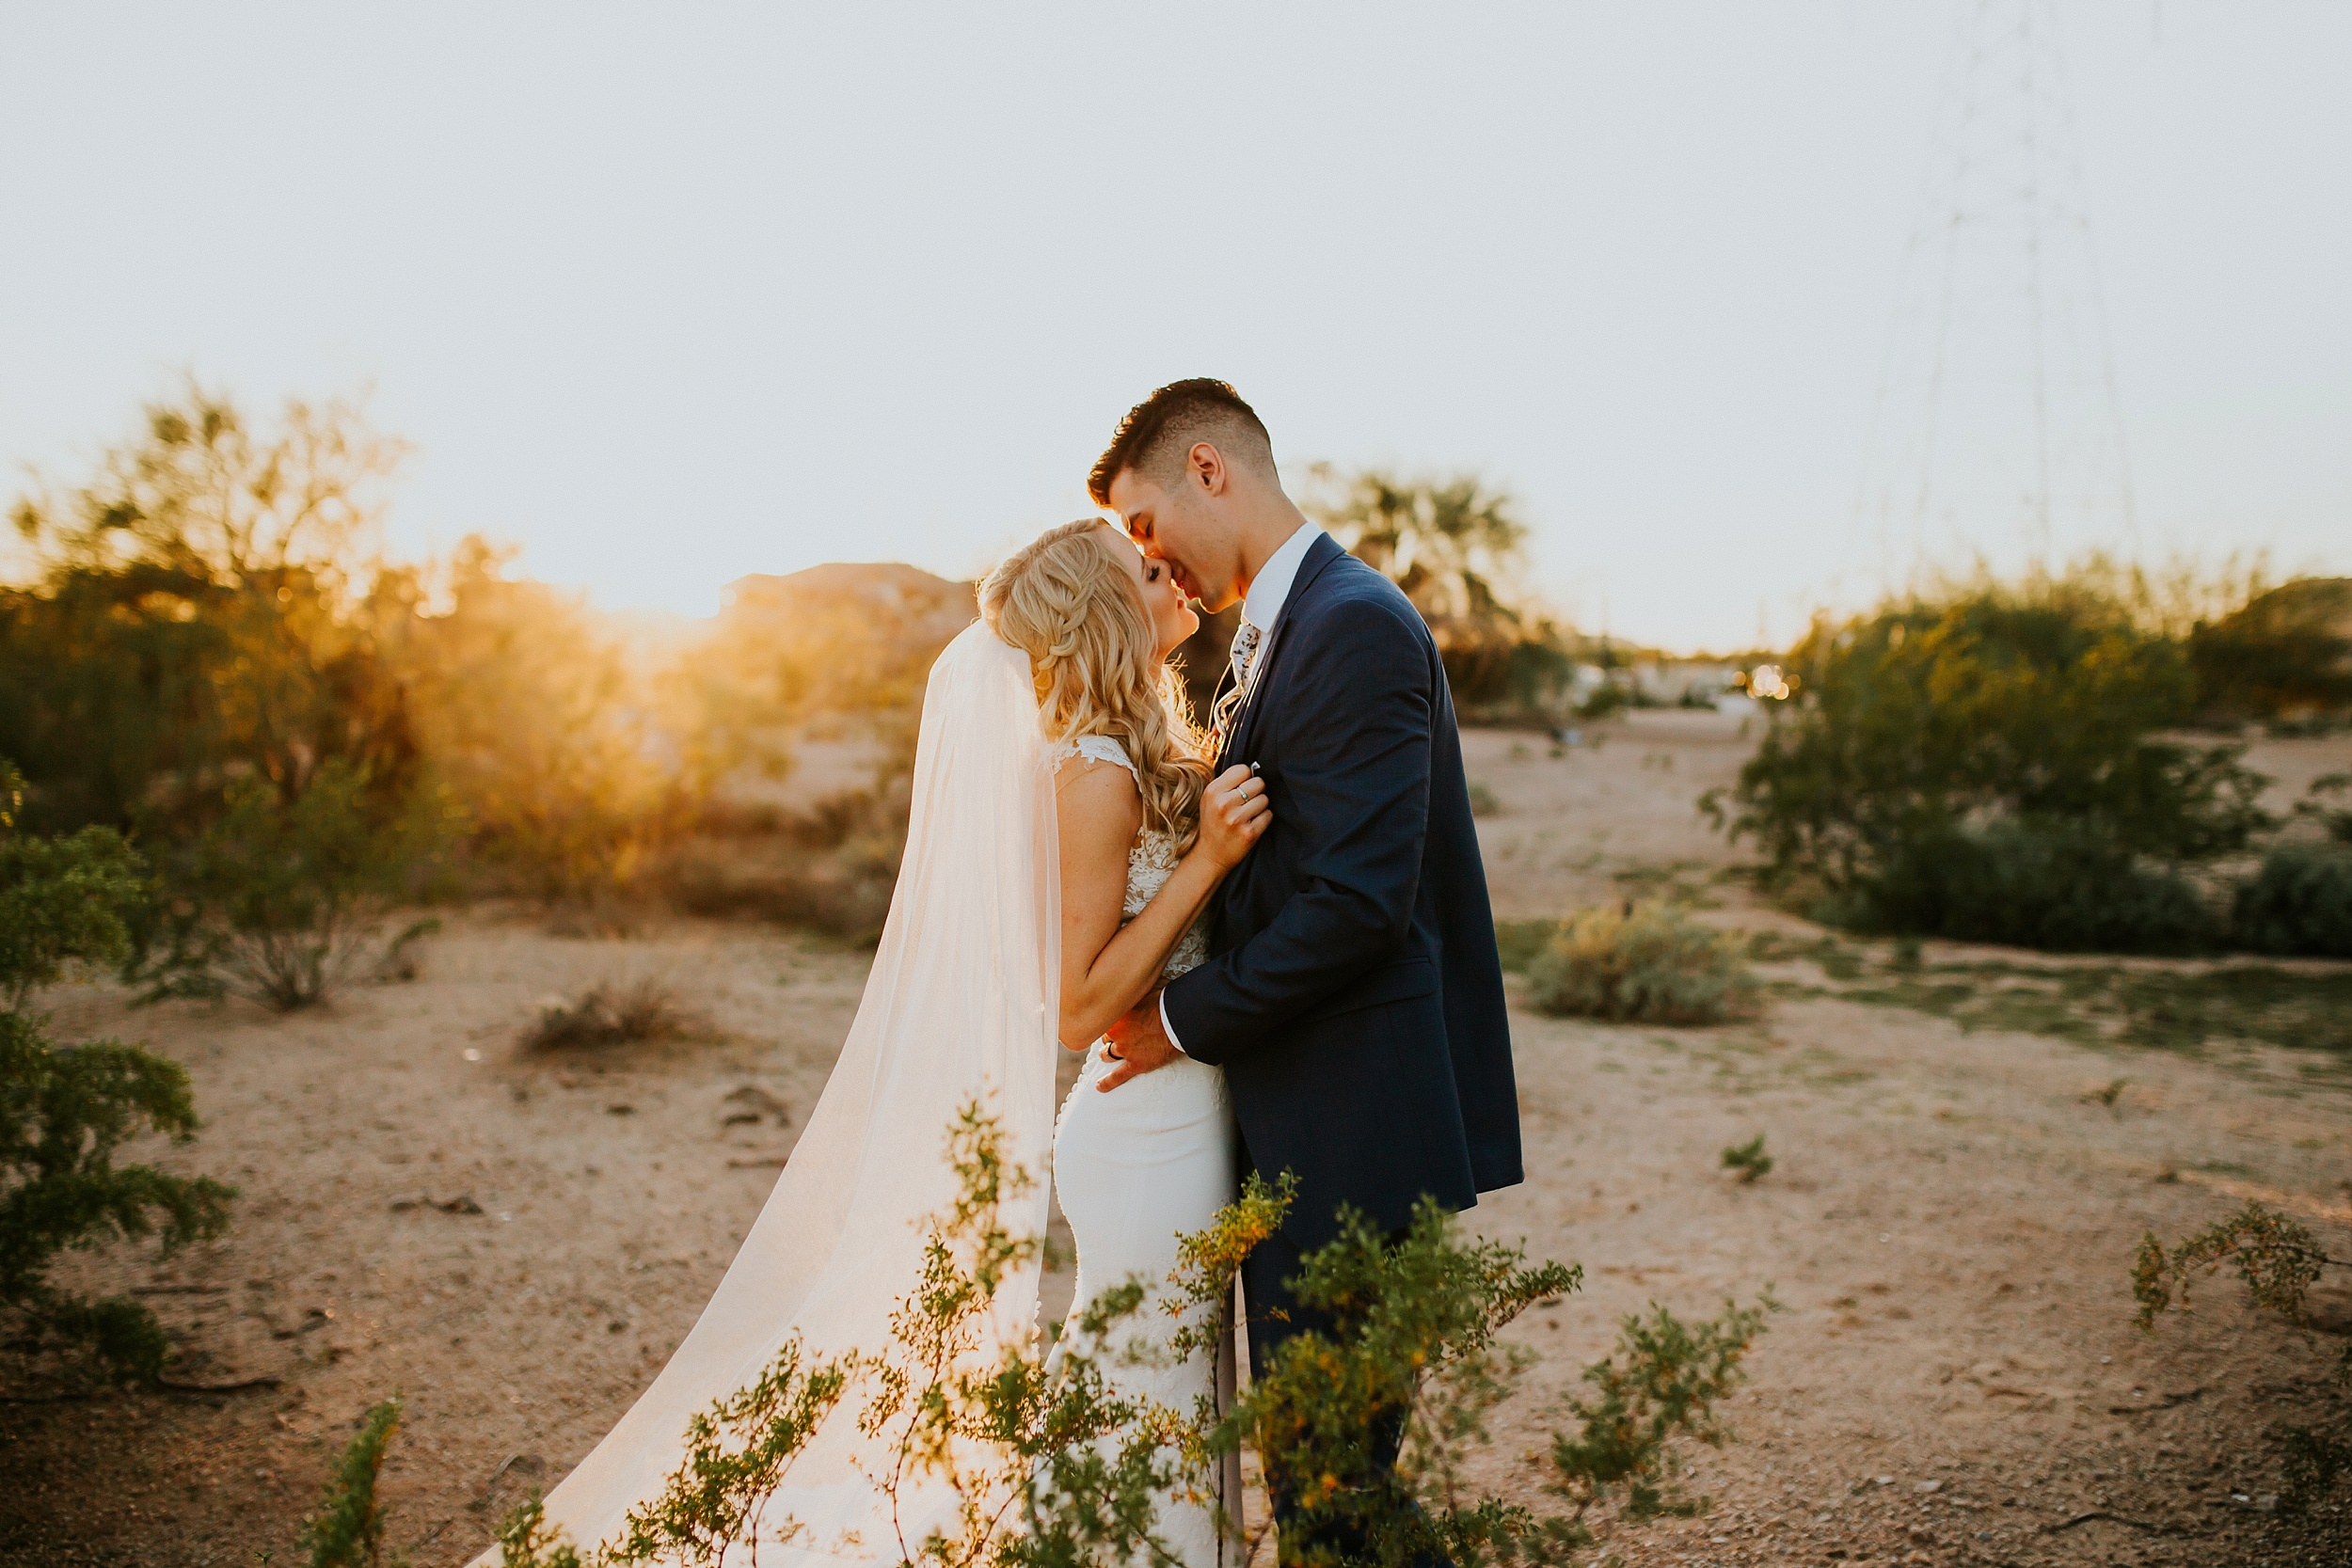 Meg+Bubba_Wedding_Bride+Groom_Portraits_Arizona-188.jpg